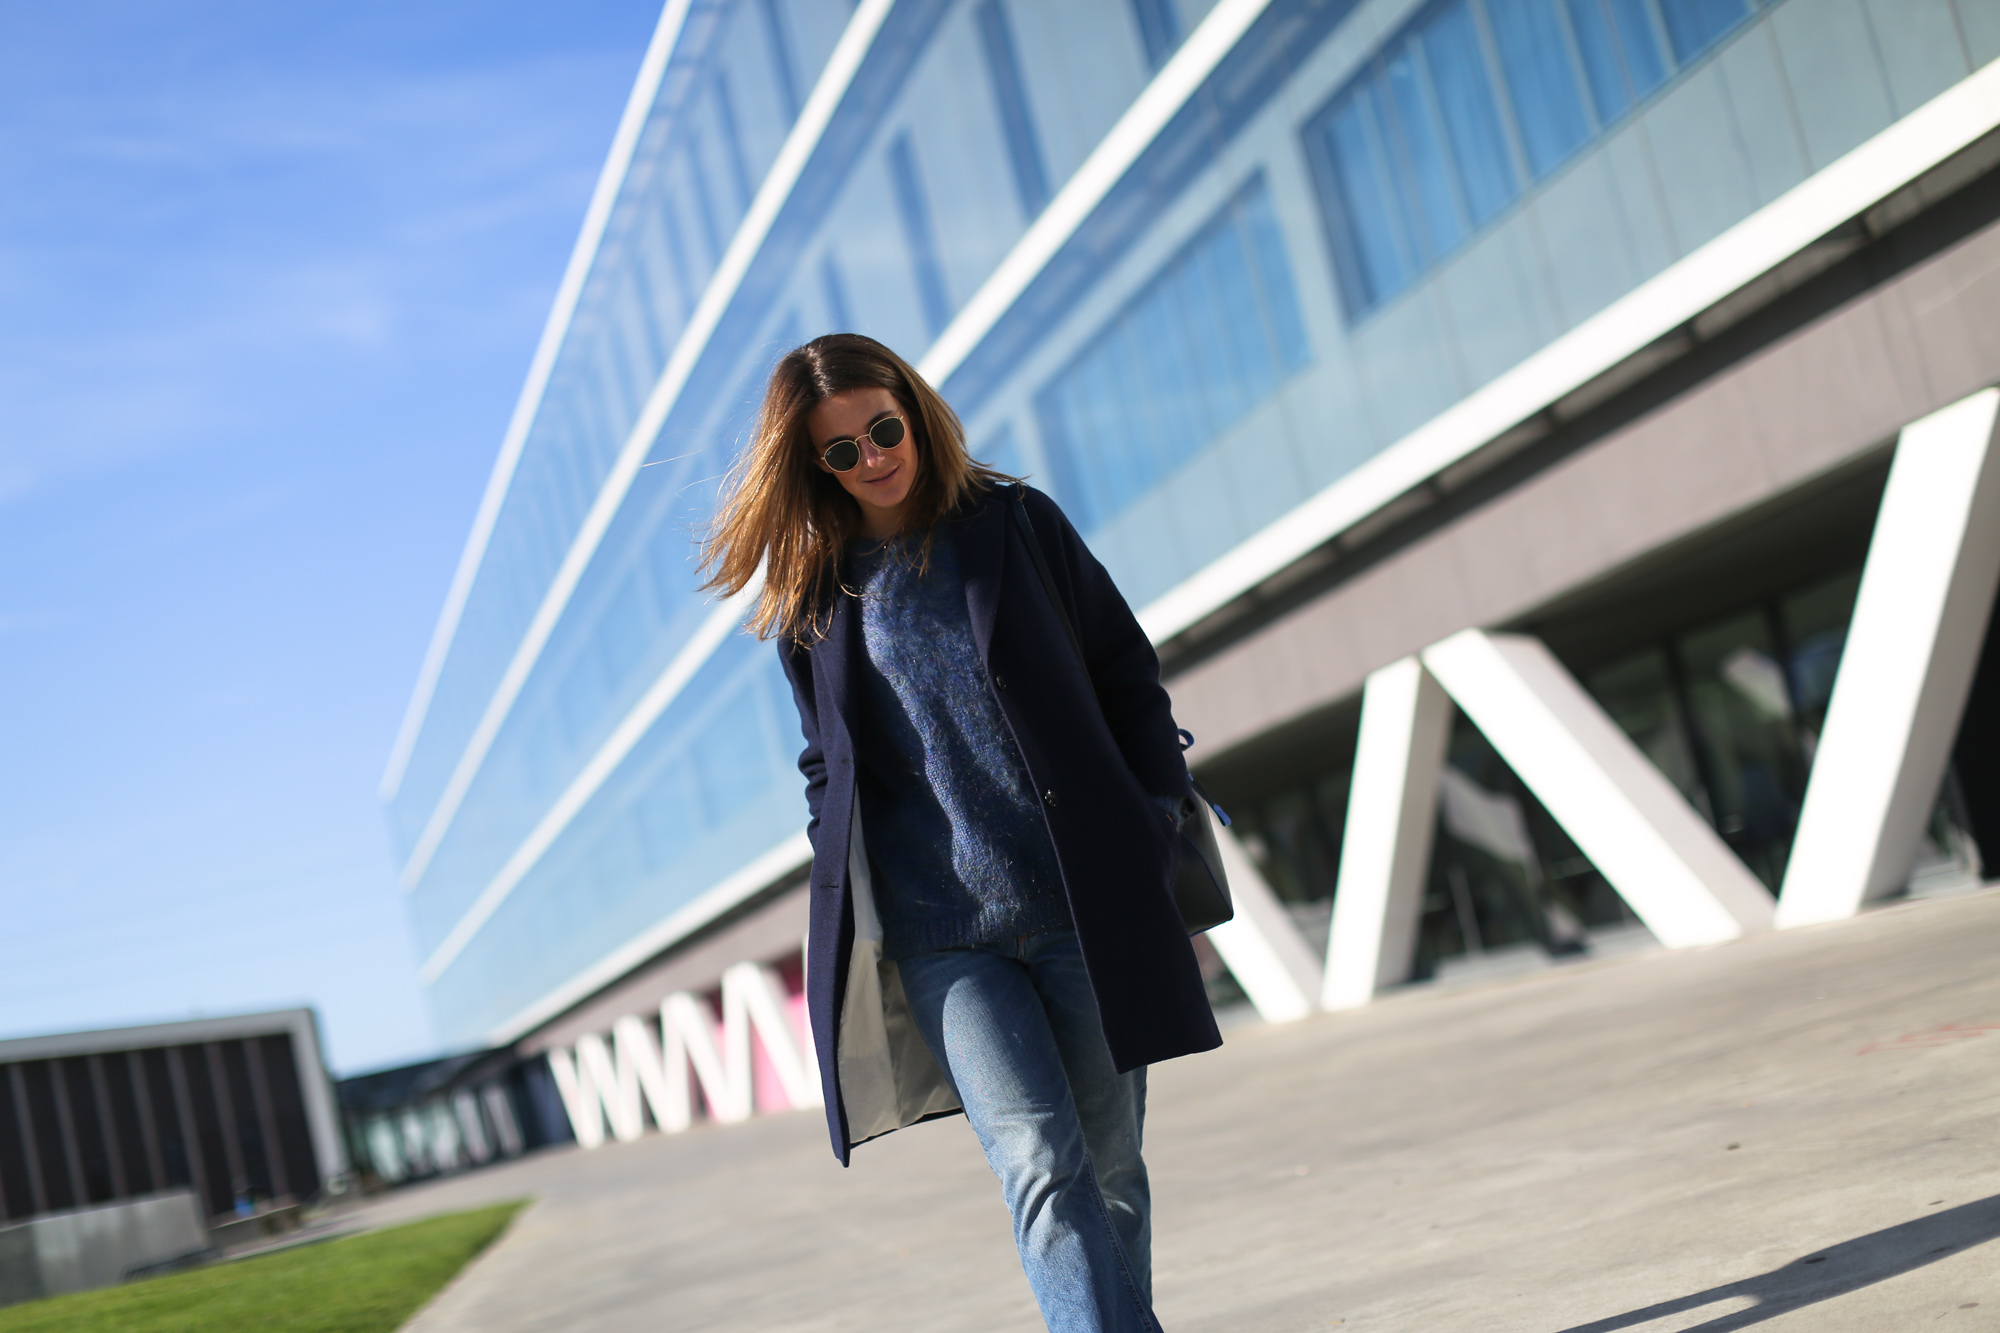 Clochet_streetstyle_masscob_navy_coat_trimmer_bilbao_acne_pop_jeans-7